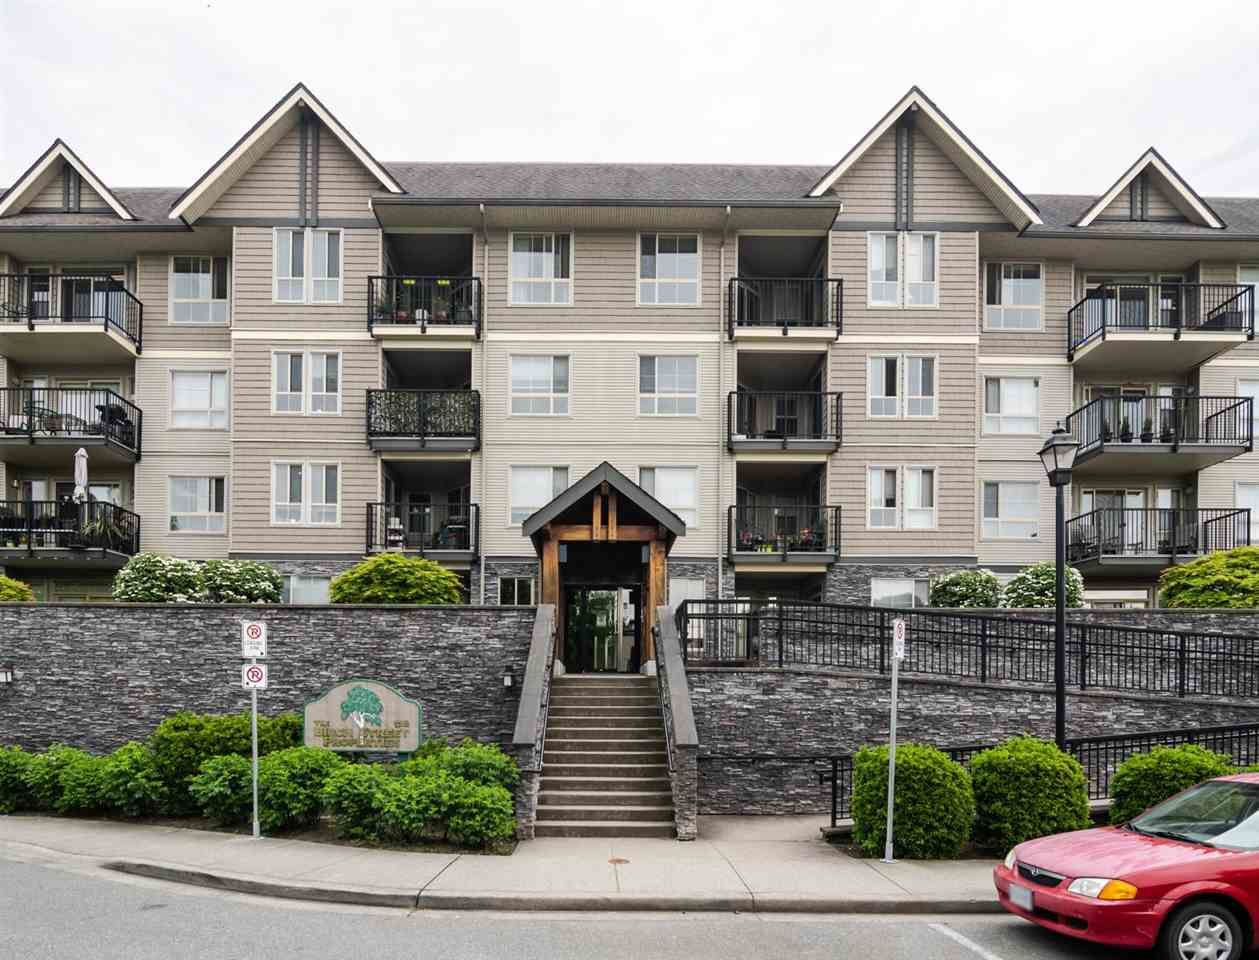 Main Photo: 207 9000 BIRCH Street in Chilliwack: Chilliwack W Young-Well Condo for sale : MLS®# R2578028